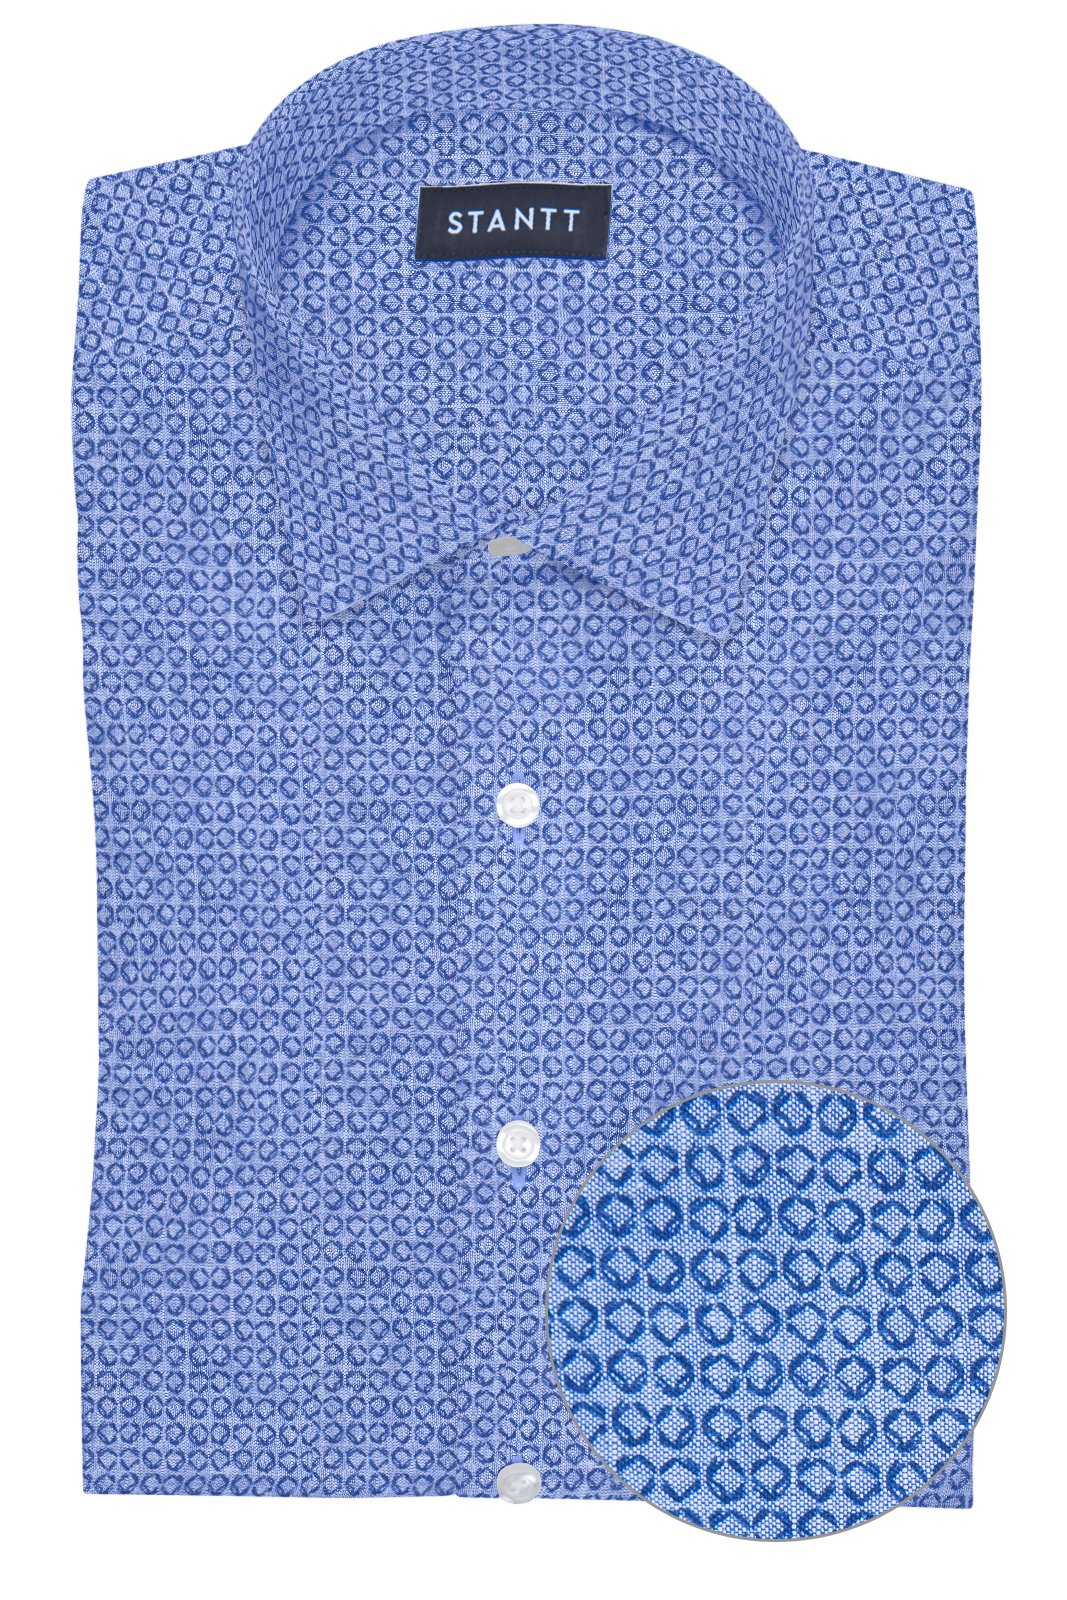 Chambray Geo Print: Modified-Spread Collar, French Cuff